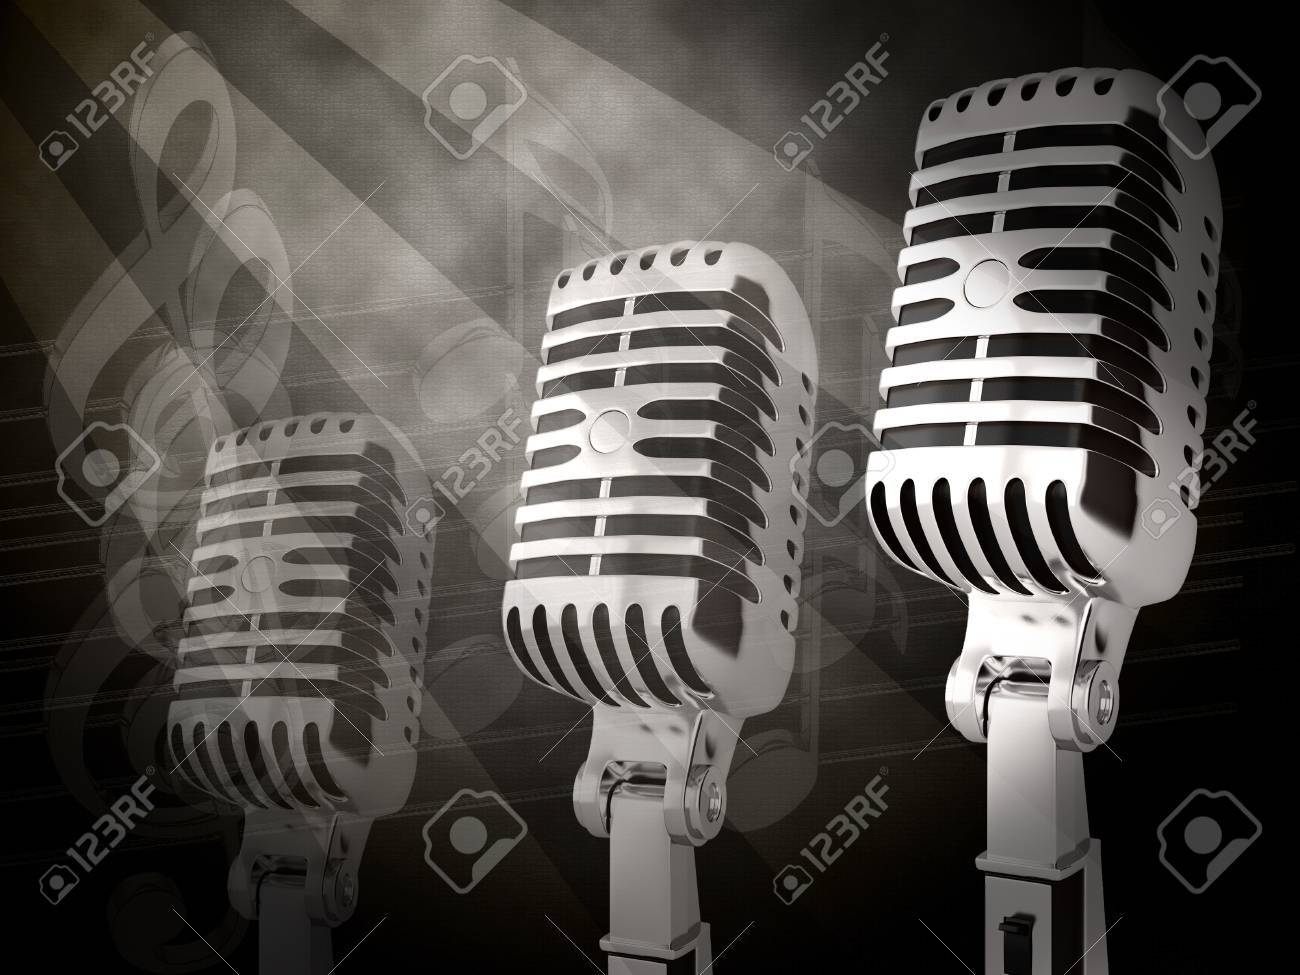 Vintage microphone on the background Stock Photo - 13120050